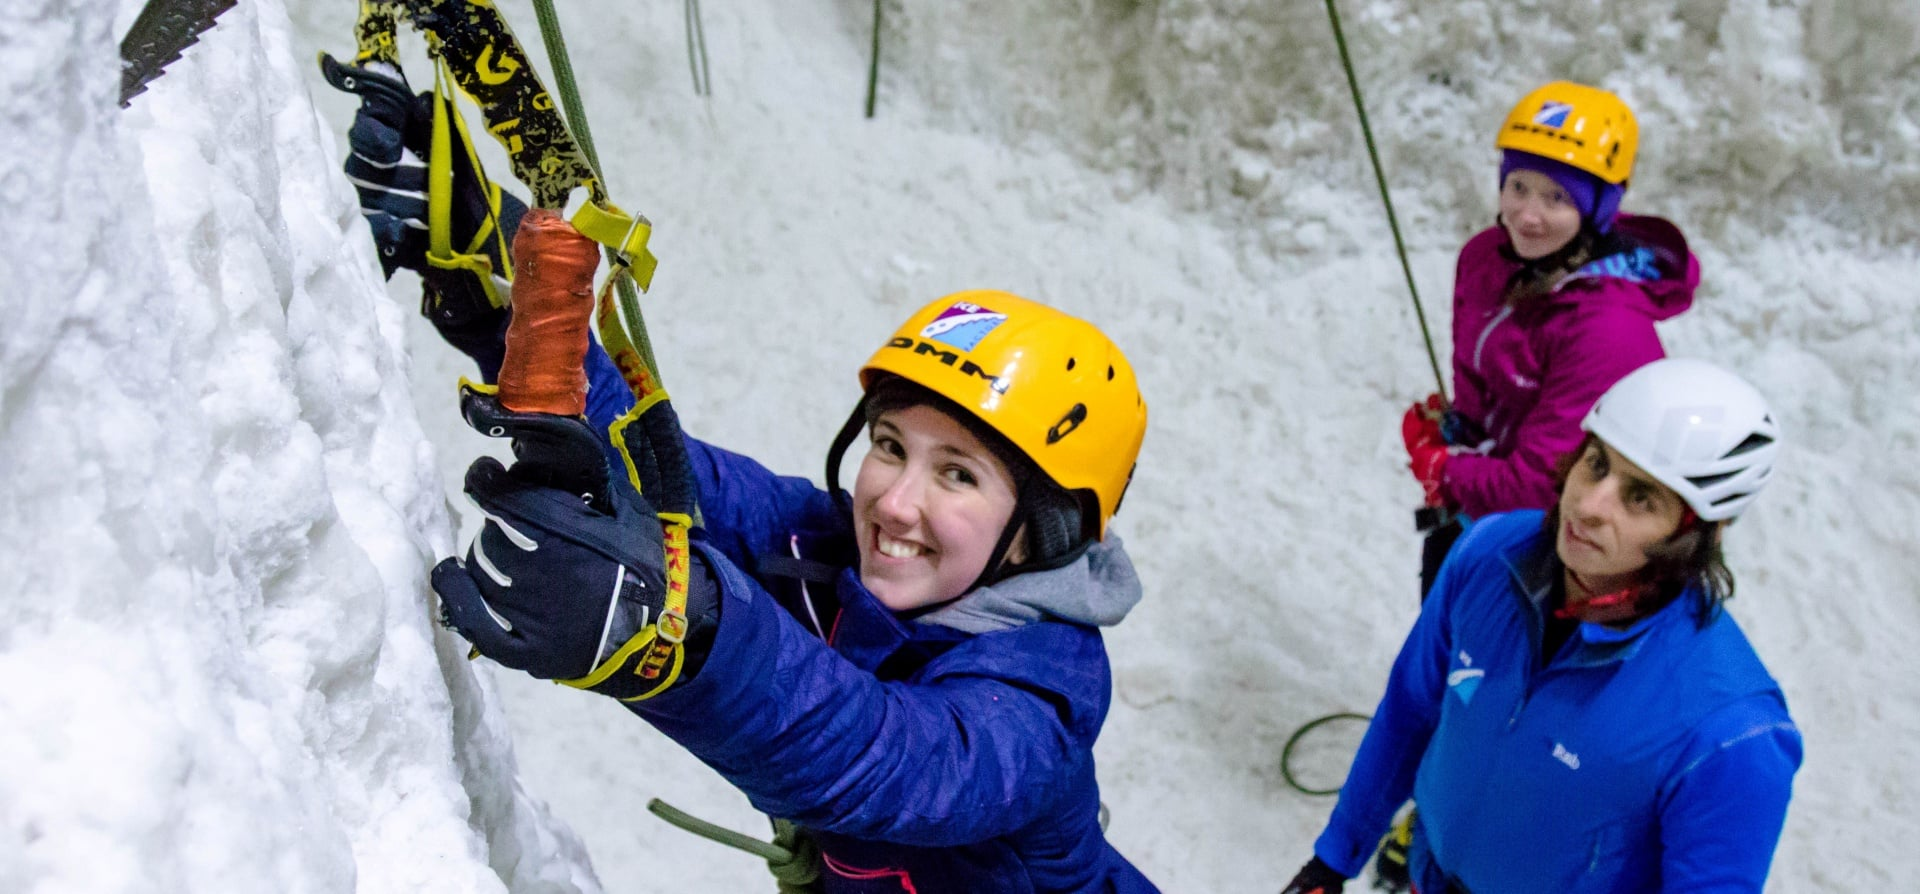 Ice and Rock Climbing Experience for 2 - Scotland-2